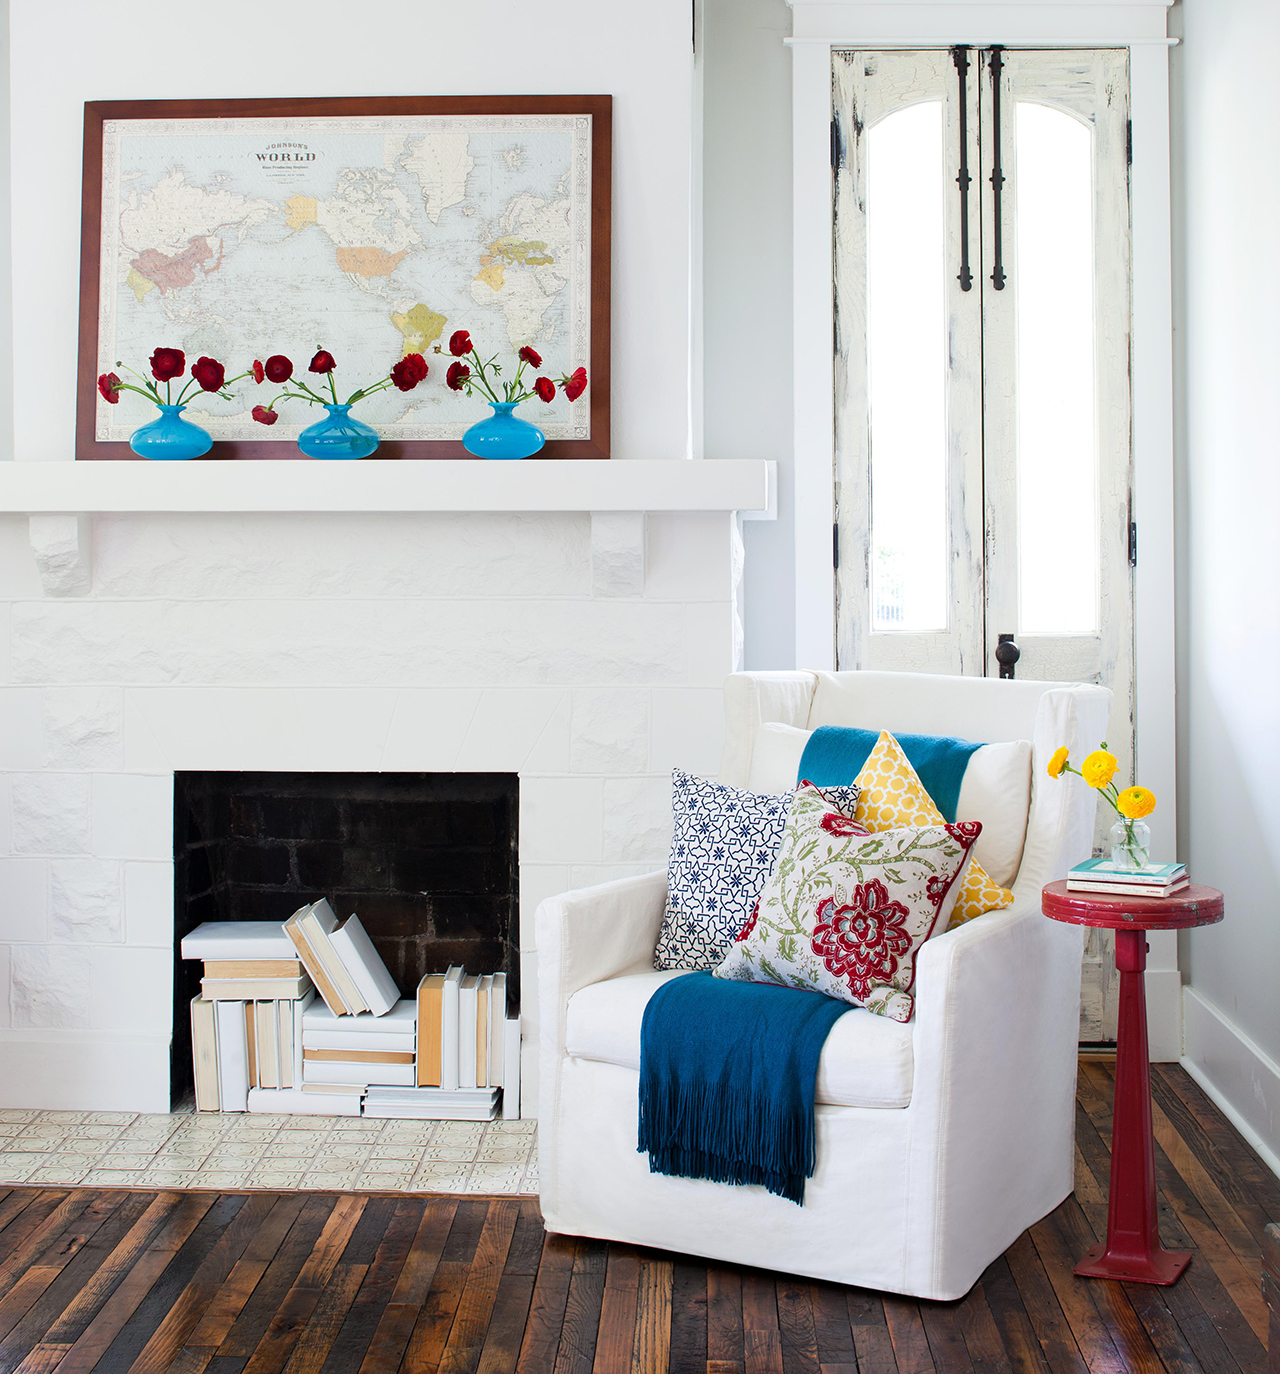 large map over mantel